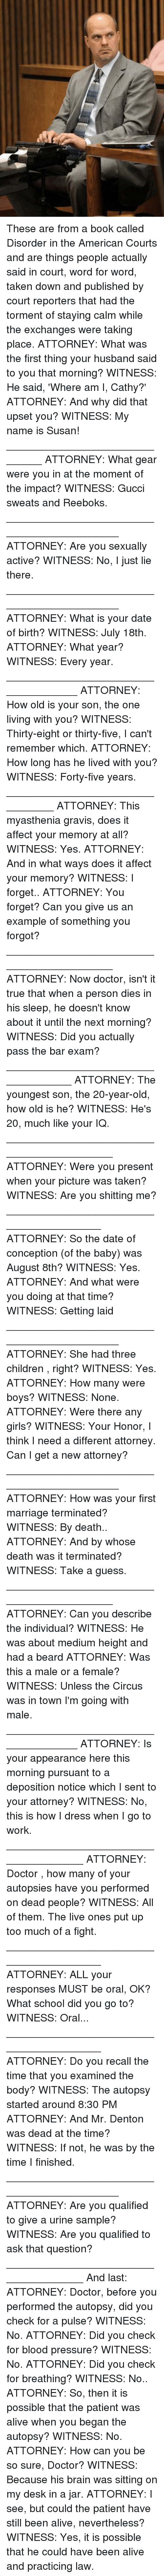 Urin: These are from a book called Disorder in the American Courts and are things people actually said in court, word for word, taken down and published by court reporters that had the torment of staying calm while the exchanges were taking place.  ATTORNEY: What was the first thing your husband said to you that morning? WITNESS: He said, 'Where am I, Cathy?' ATTORNEY: And why did that upset you? WITNESS: My name is Susan! _______________________________ ATTORNEY: What gear were you in at the moment of the impact? WITNESS: Gucci sweats and Reeboks. ____________________________________________ ATTORNEY: Are you sexually active? WITNESS: No, I just lie there. ____________________________________________ ATTORNEY: What is your date of birth? WITNESS: July 18th. ATTORNEY: What year? WITNESS: Every year. _____________________________________ ATTORNEY: How old is your son, the one living with you? WITNESS: Thirty-eight or thirty-five, I can't remember which. ATTORNEY: How long has he lived with you? WITNESS: Forty-five years. _________________________________ ATTORNEY: This myasthenia gravis, does it affect your memory at all? WITNESS: Yes. ATTORNEY: And in what ways does it affect your memory? WITNESS: I forget.. ATTORNEY: You forget? Can you give us an example of something you forgot? ___________________________________________ ATTORNEY: Now doctor, isn't it true that when a person dies in his sleep, he doesn't know about it until the next morning? WITNESS: Did you actually pass the bar exam? ____________________________________  ATTORNEY: The youngest son, the 20-year-old, how old is he? WITNESS: He's 20, much like your IQ. ___________________________________________ ATTORNEY: Were you present when your picture was taken? WITNESS: Are you shitting me? _________________________________________ ATTORNEY: So the date of conception (of the baby) was August 8th? WITNESS: Yes. ATTORNEY: And what were you doing at that time? WITNESS: Getting laid ____________________________________________  ATTORNEY: She had three children , right? WITNESS: Yes. ATTORNEY: How many were boys? WITNESS: None. ATTORNEY: Were there any girls? WITNESS: Your Honor, I think I need a different attorney. Can I get a new attorney? ____________________________________________ ATTORNEY: How was your first marriage terminated? WITNESS: By death.. ATTORNEY: And by whose death was it terminated? WITNESS: Take a guess. ___________________________________________  ATTORNEY: Can you describe the individual? WITNESS: He was about medium height and had a beard ATTORNEY: Was this a male or a female? WITNESS: Unless the Circus was in town I'm going with male. _____________________________________ ATTORNEY: Is your appearance here this morning pursuant to a deposition notice which I sent to your attorney? WITNESS: No, this is how I dress when I go to work. ______________________________________ ATTORNEY: Doctor , how many of your autopsies have you performed on dead people? WITNESS: All of them. The live ones put up too much of a fight. _________________________________________ ATTORNEY: ALL your responses MUST be oral, OK? What school did you go to? WITNESS: Oral... _________________________________________ ATTORNEY: Do you recall the time that you examined the body? WITNESS: The autopsy started around 8:30 PM ATTORNEY: And Mr. Denton was dead at the time? WITNESS: If not, he was by the time I finished. ____________________________________________ ATTORNEY: Are you qualified to give a urine sample? WITNESS: Are you qualified to ask that question?  ______________________________________ And last:  ATTORNEY: Doctor, before you performed the autopsy, did you check for a pulse? WITNESS: No. ATTORNEY: Did you check for blood pressure? WITNESS: No. ATTORNEY: Did you check for breathing? WITNESS: No.. ATTORNEY: So, then it is possible that the patient was alive when you began the autopsy? WITNESS: No. ATTORNEY: How can you be so sure, Doctor? WITNESS: Because his brain was sitting on my desk in a jar. ATTORNEY: I see, but could the patient have still been alive, nevertheless? WITNESS: Yes, it is possible that he could have been alive and practicing law.